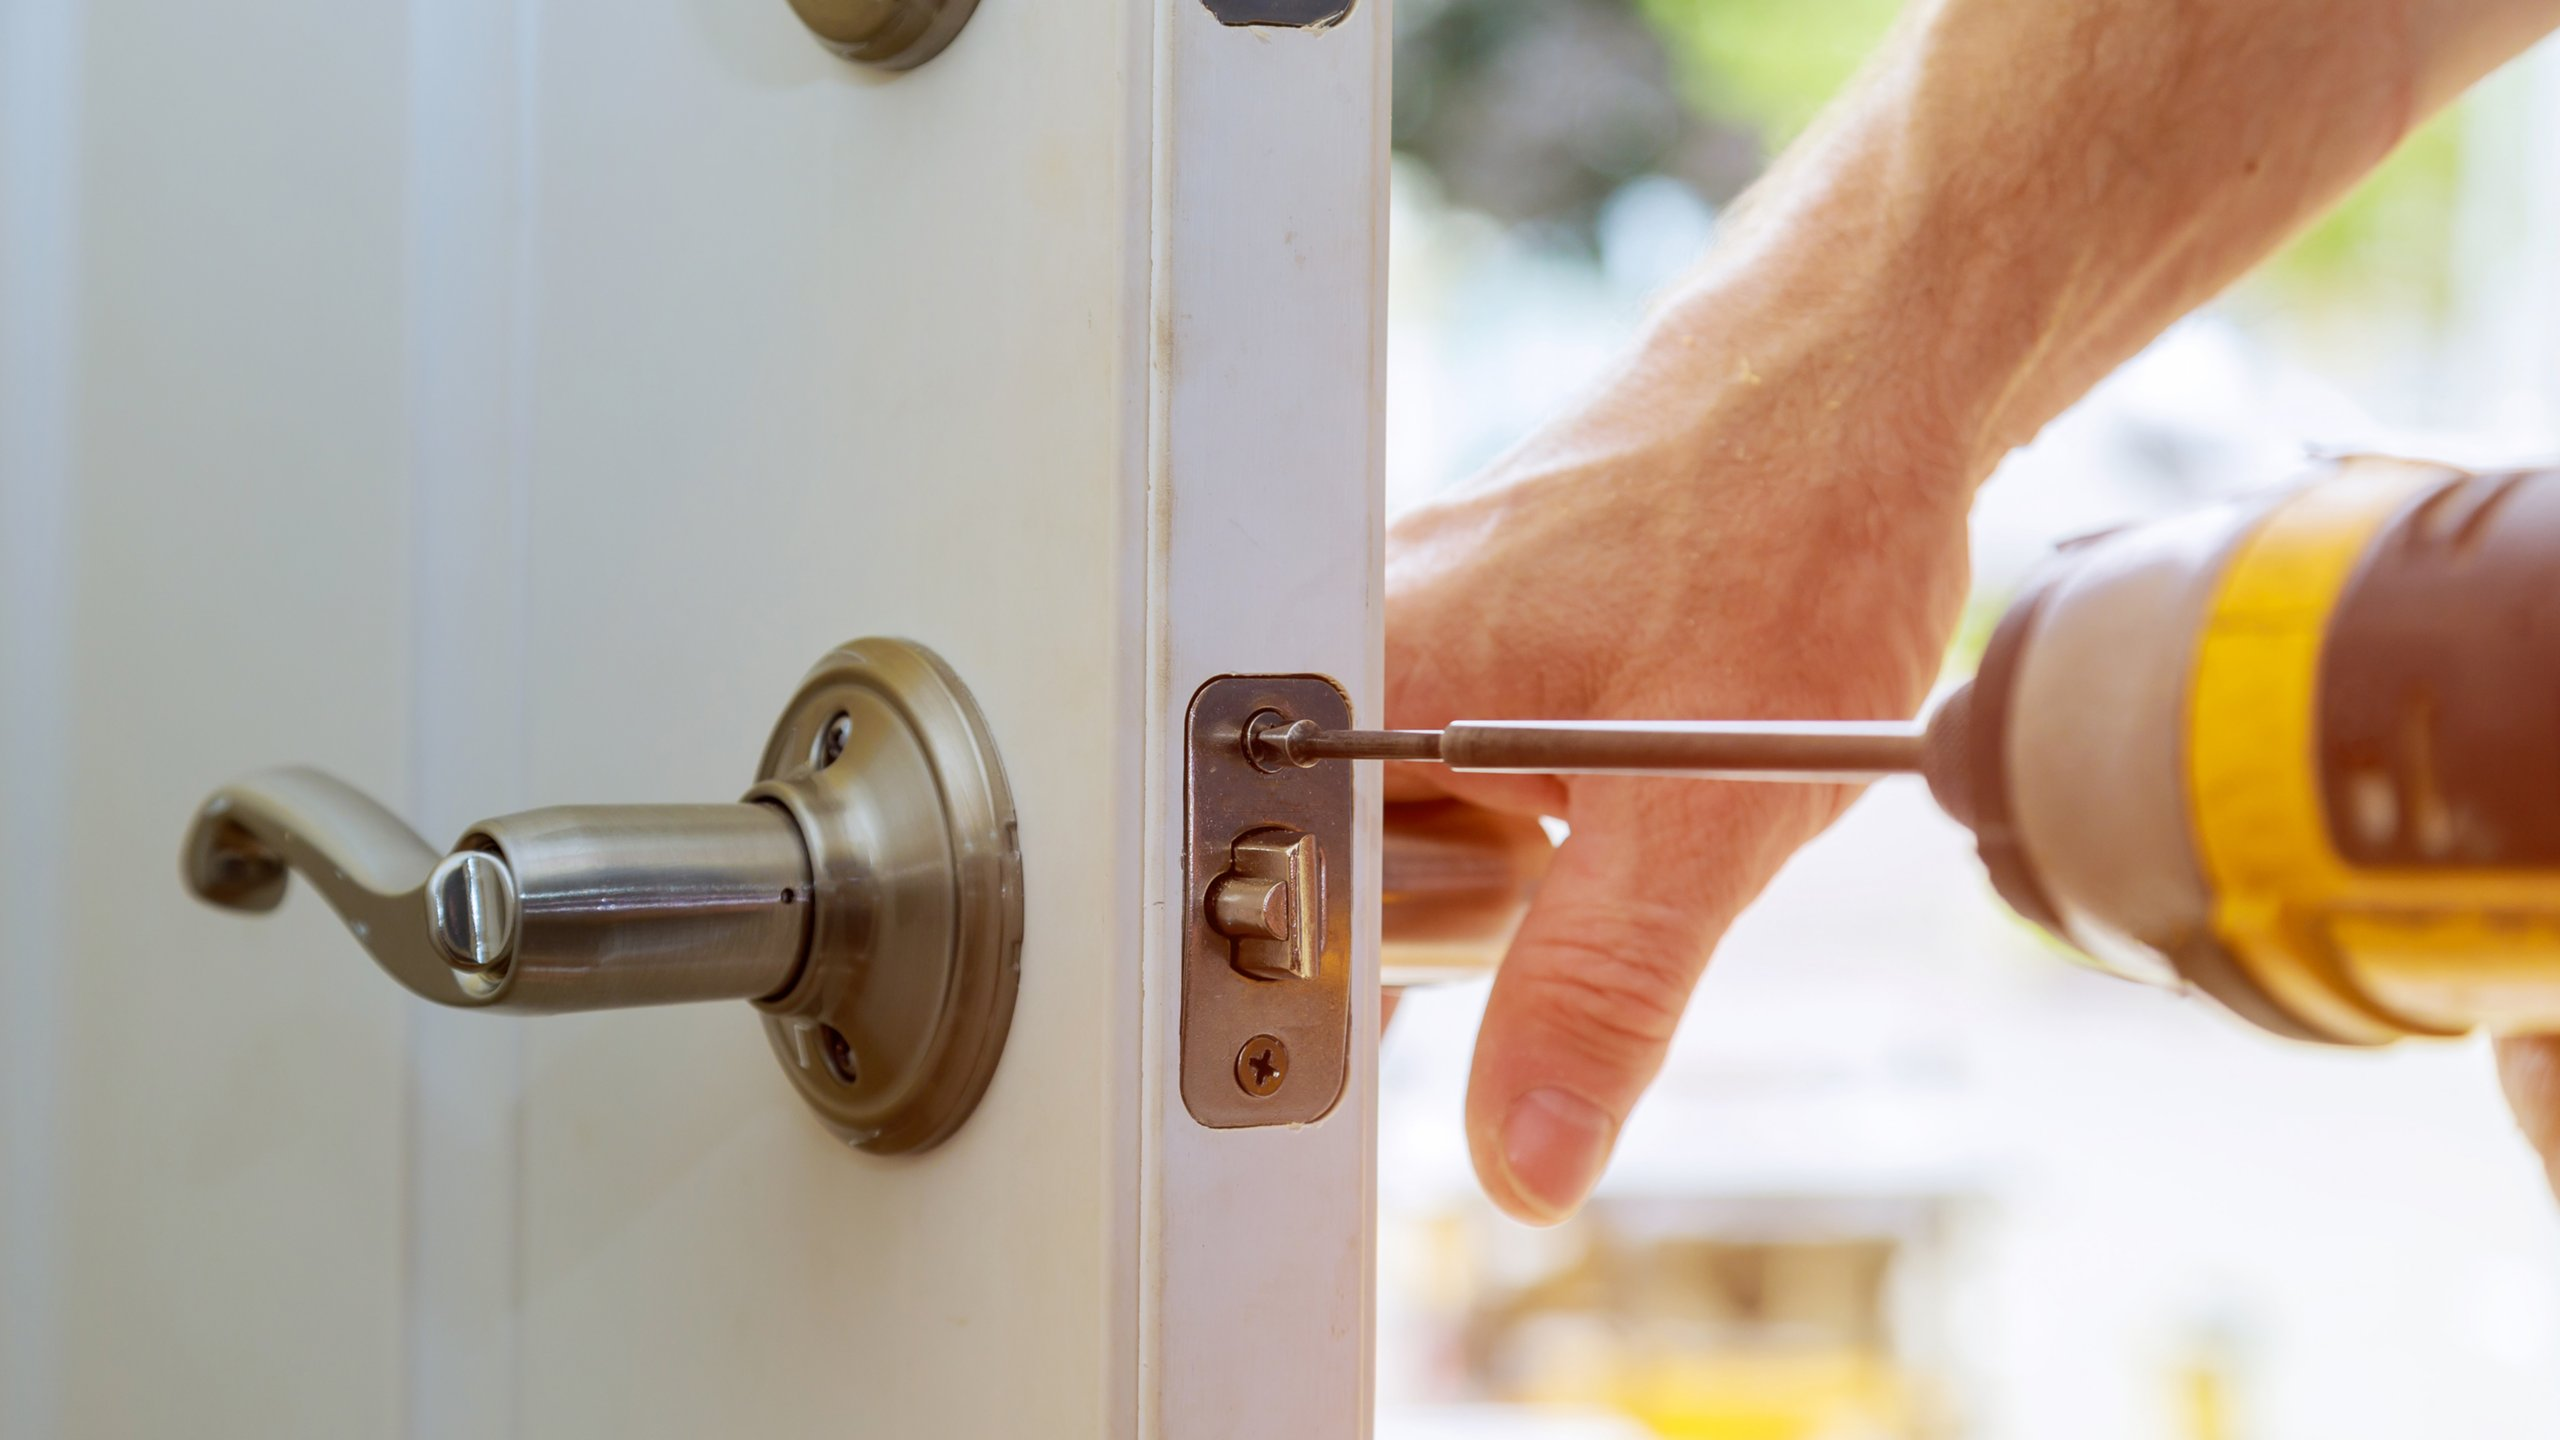 Drilling in screws for door handle assembly